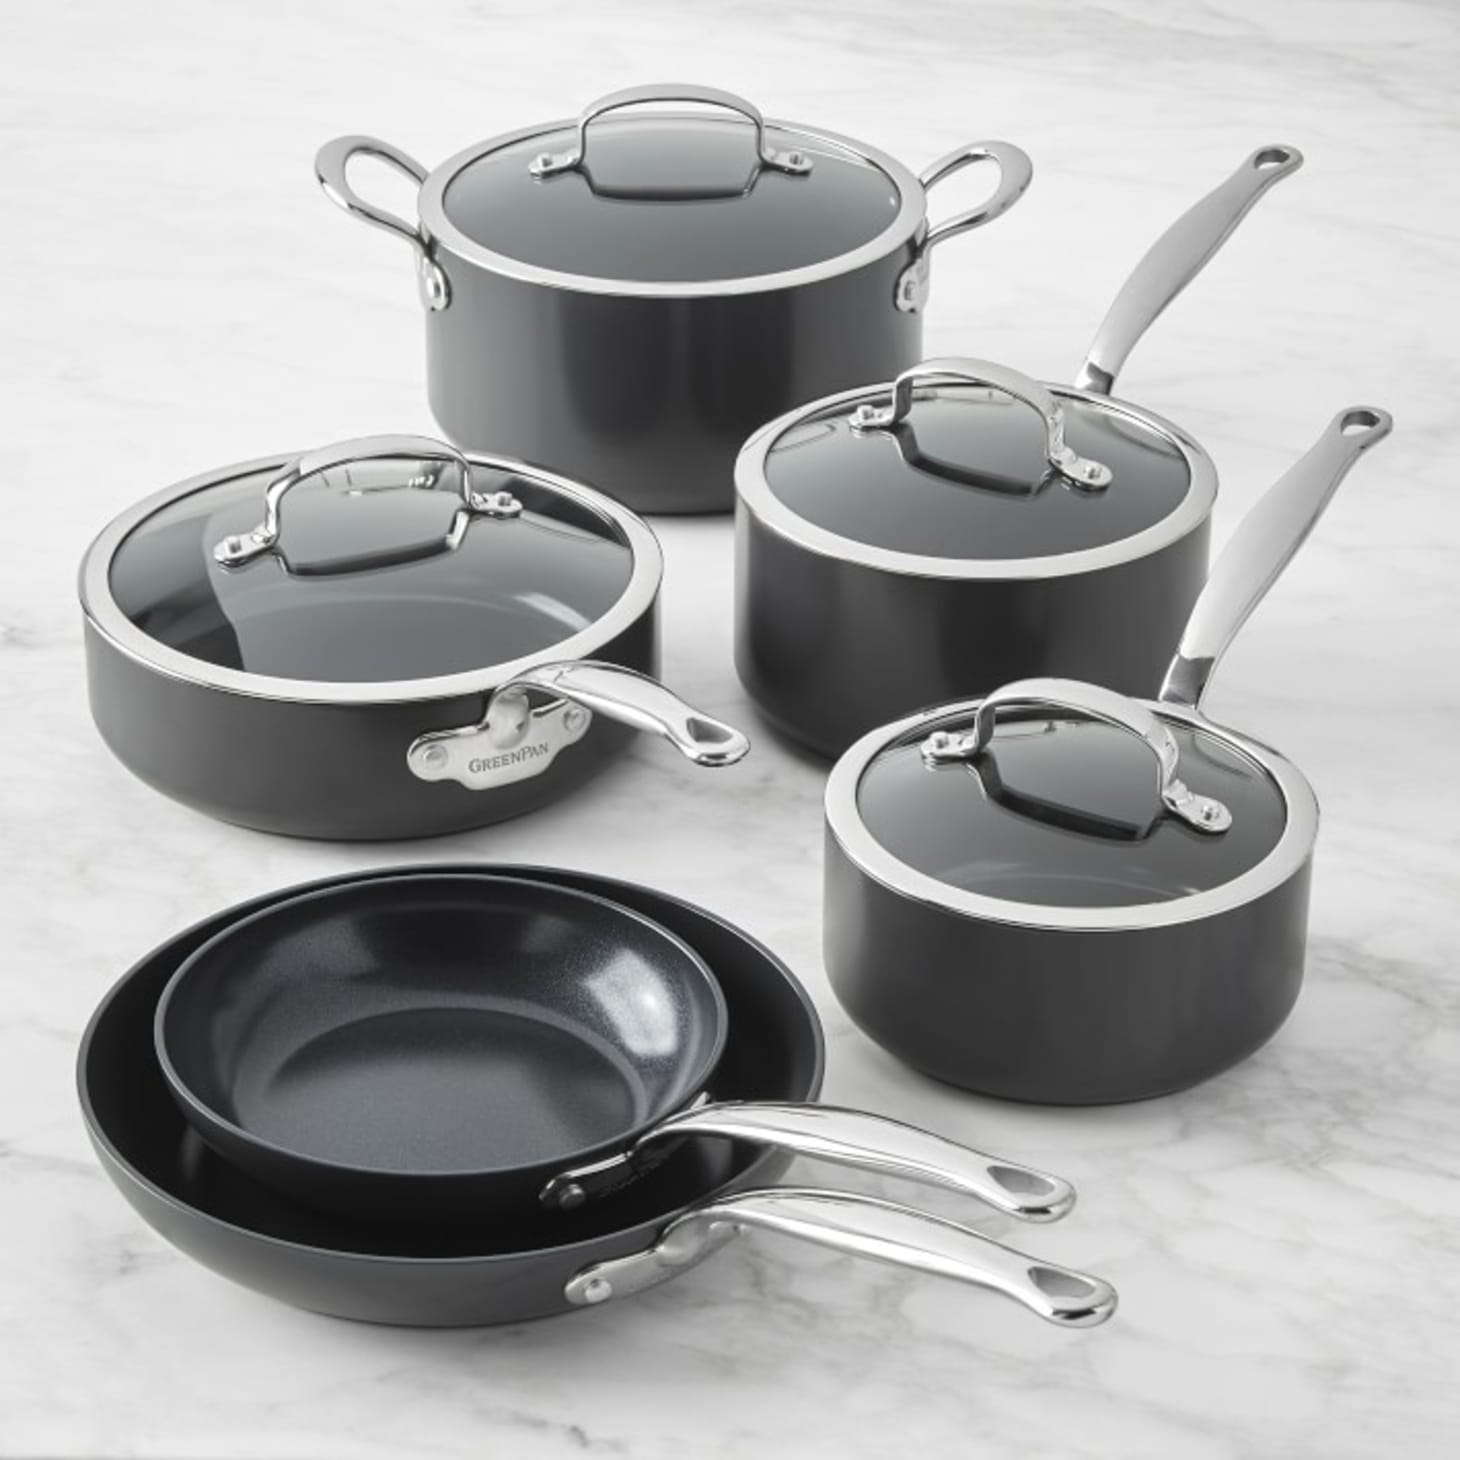 Best Cookware Set 2020.Best Cookware Sets Stainless Steel Nonstick Cast Iron